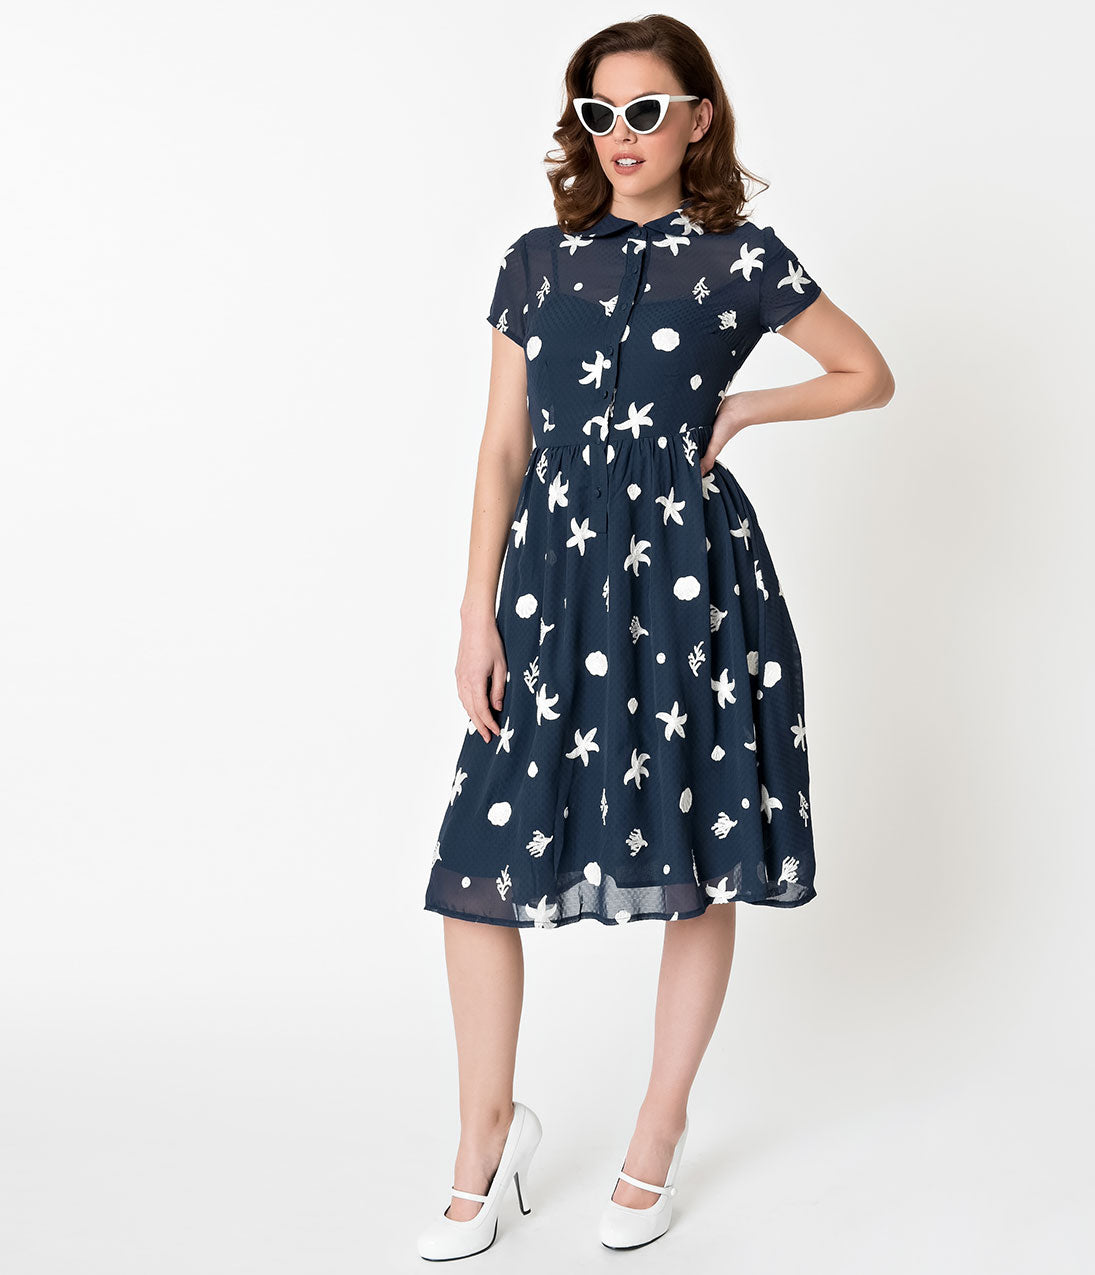 1950s Swing Dresses | 50s Swing Dress Voodoo Vixen Navy Blue Under The Sea Embroidered Mary Swing Dress $57.00 AT vintagedancer.com